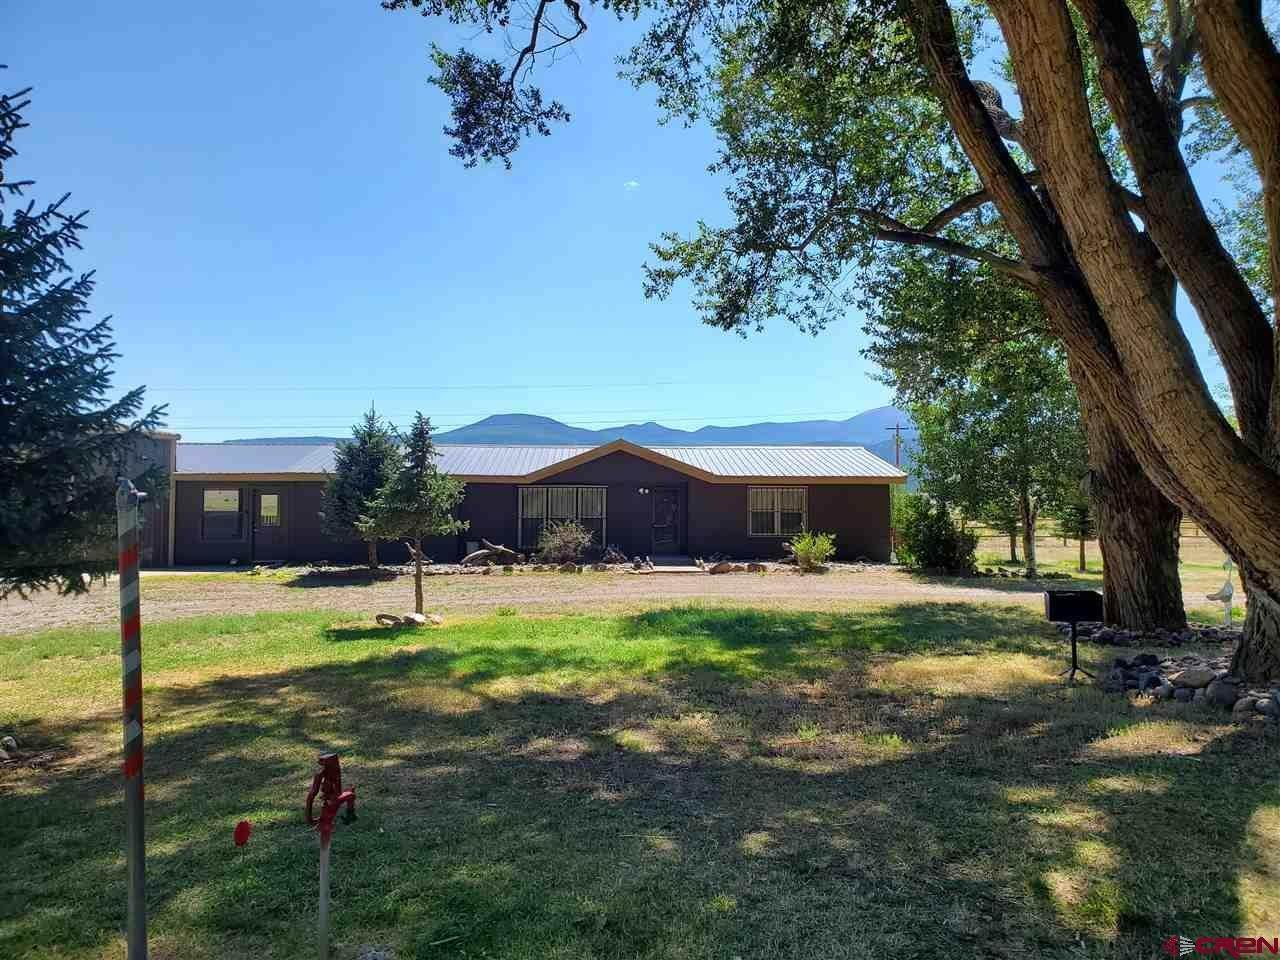 Single Family Homes for Sale at 720 county road 18 Del Norte, Colorado 81154 United States